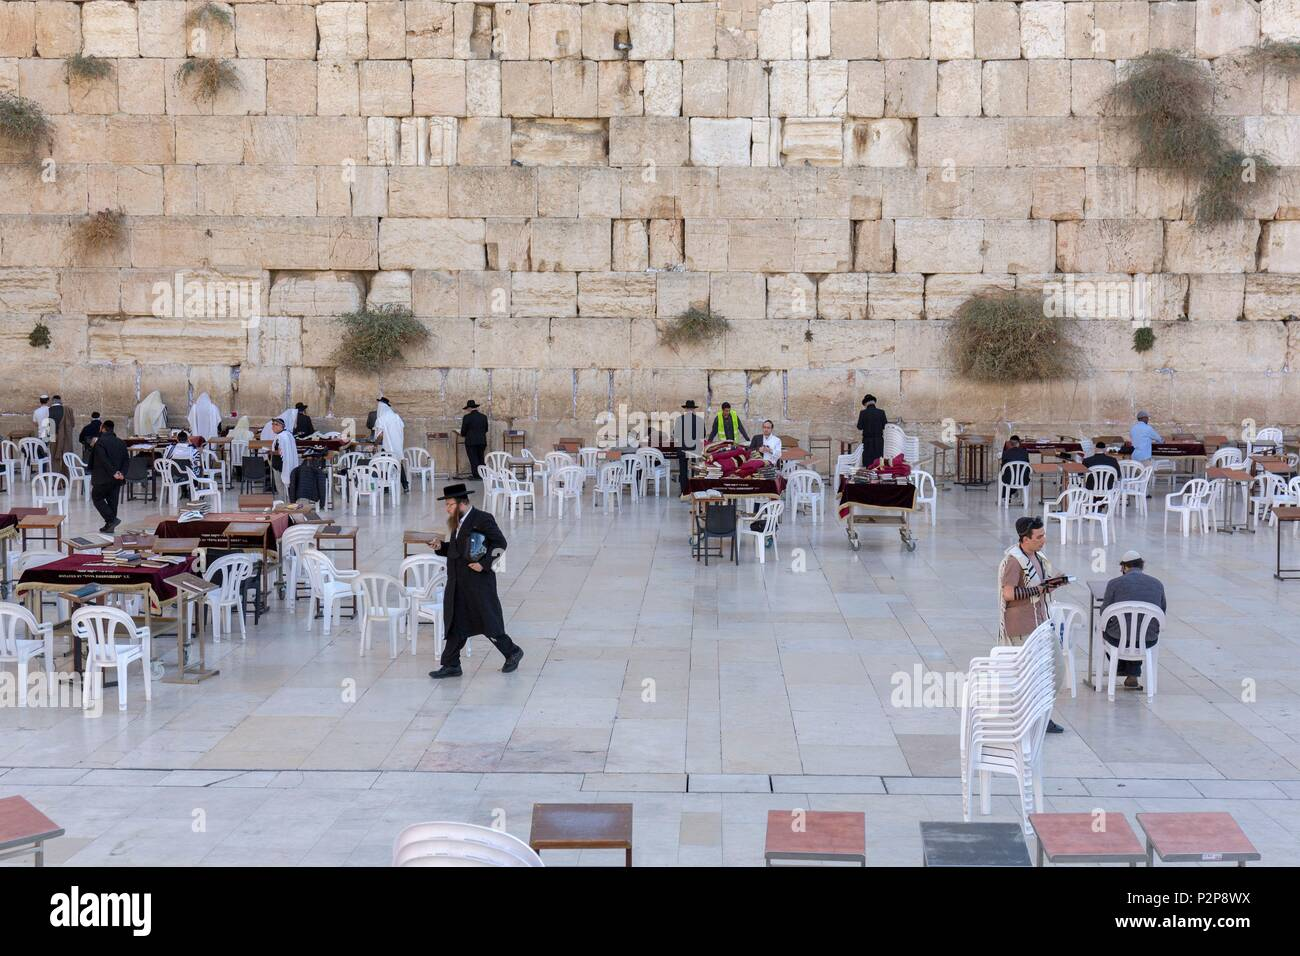 Israel, Jerusalem, the UNESCO World Heritage Old City, the Western Wall or Wailing Wall, Men in Prayer - Stock Image